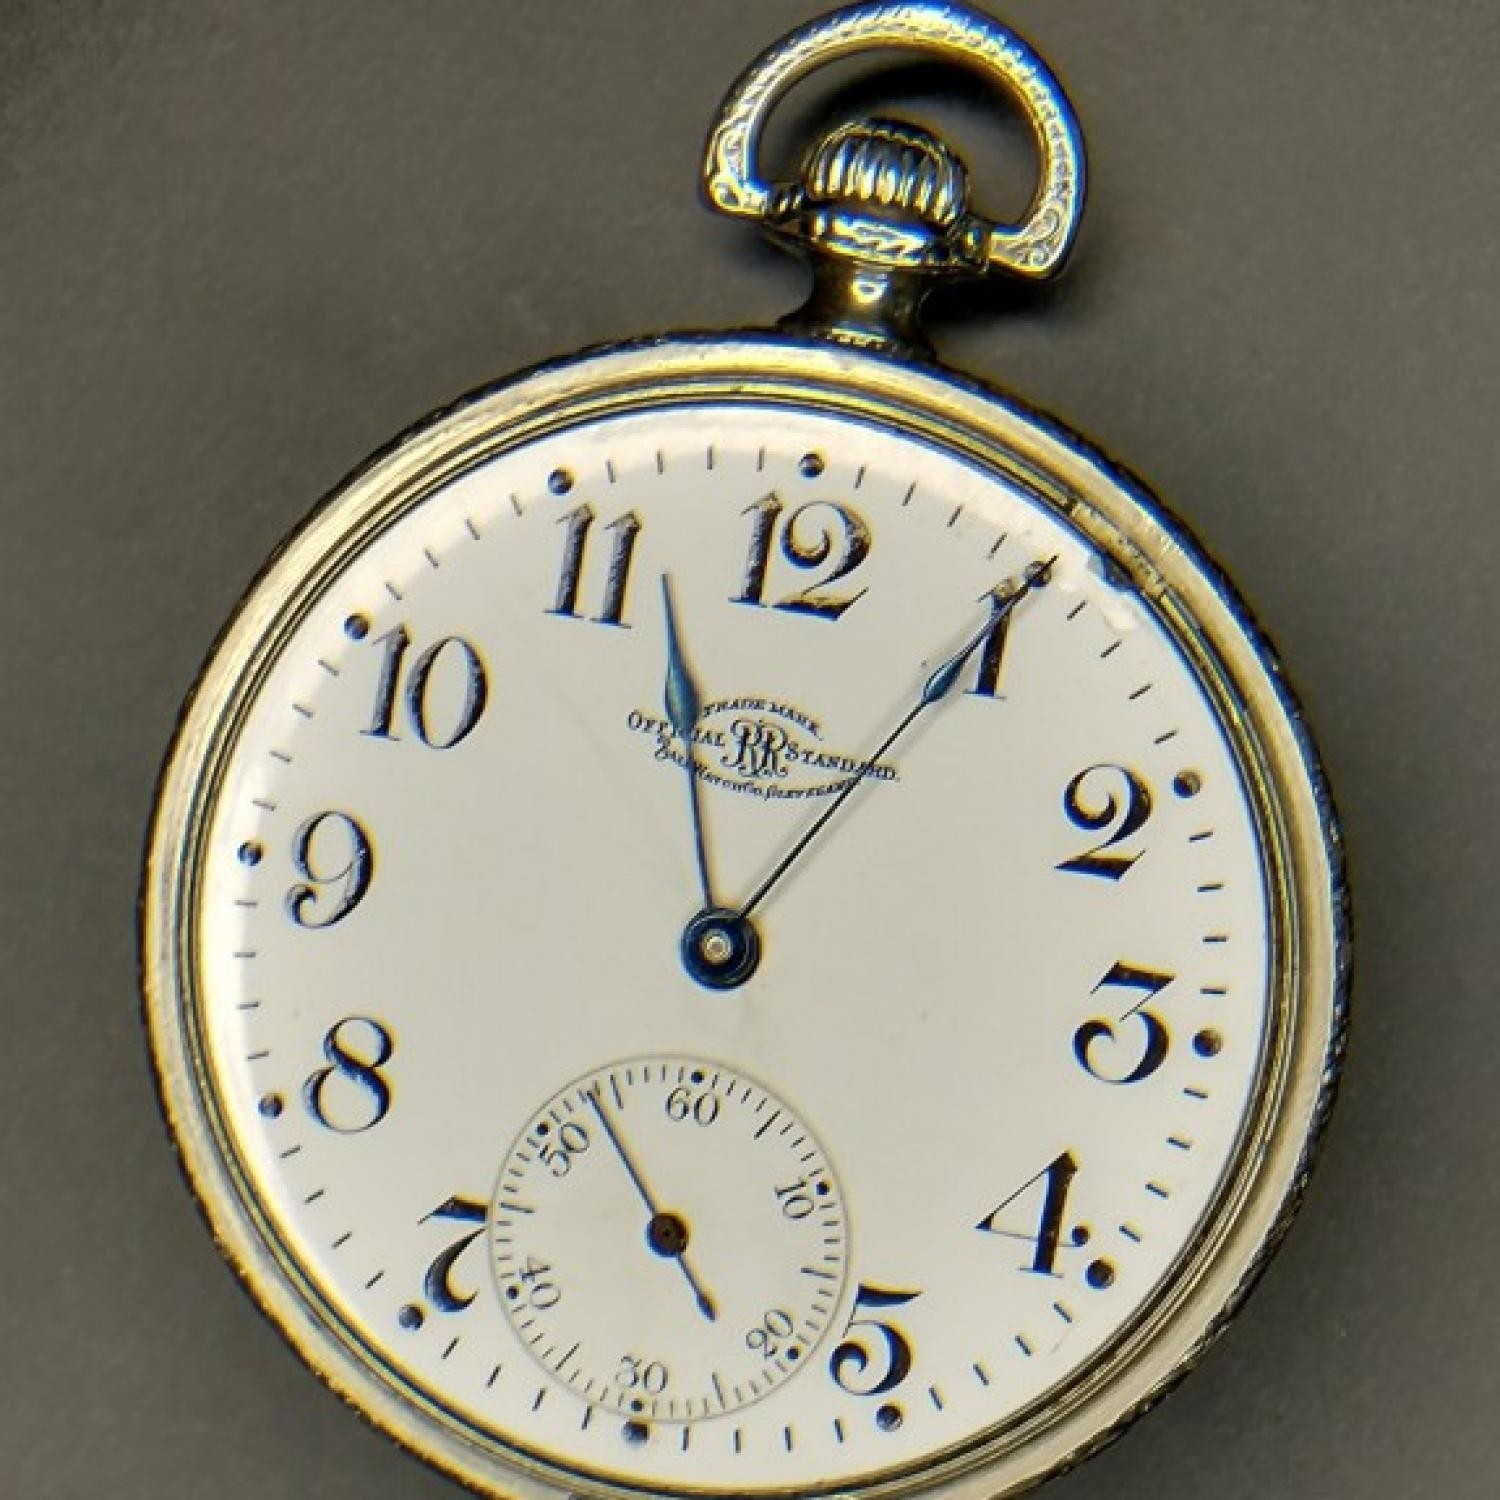 Image of Ball - Waltham Official Standard #B208690 Dial